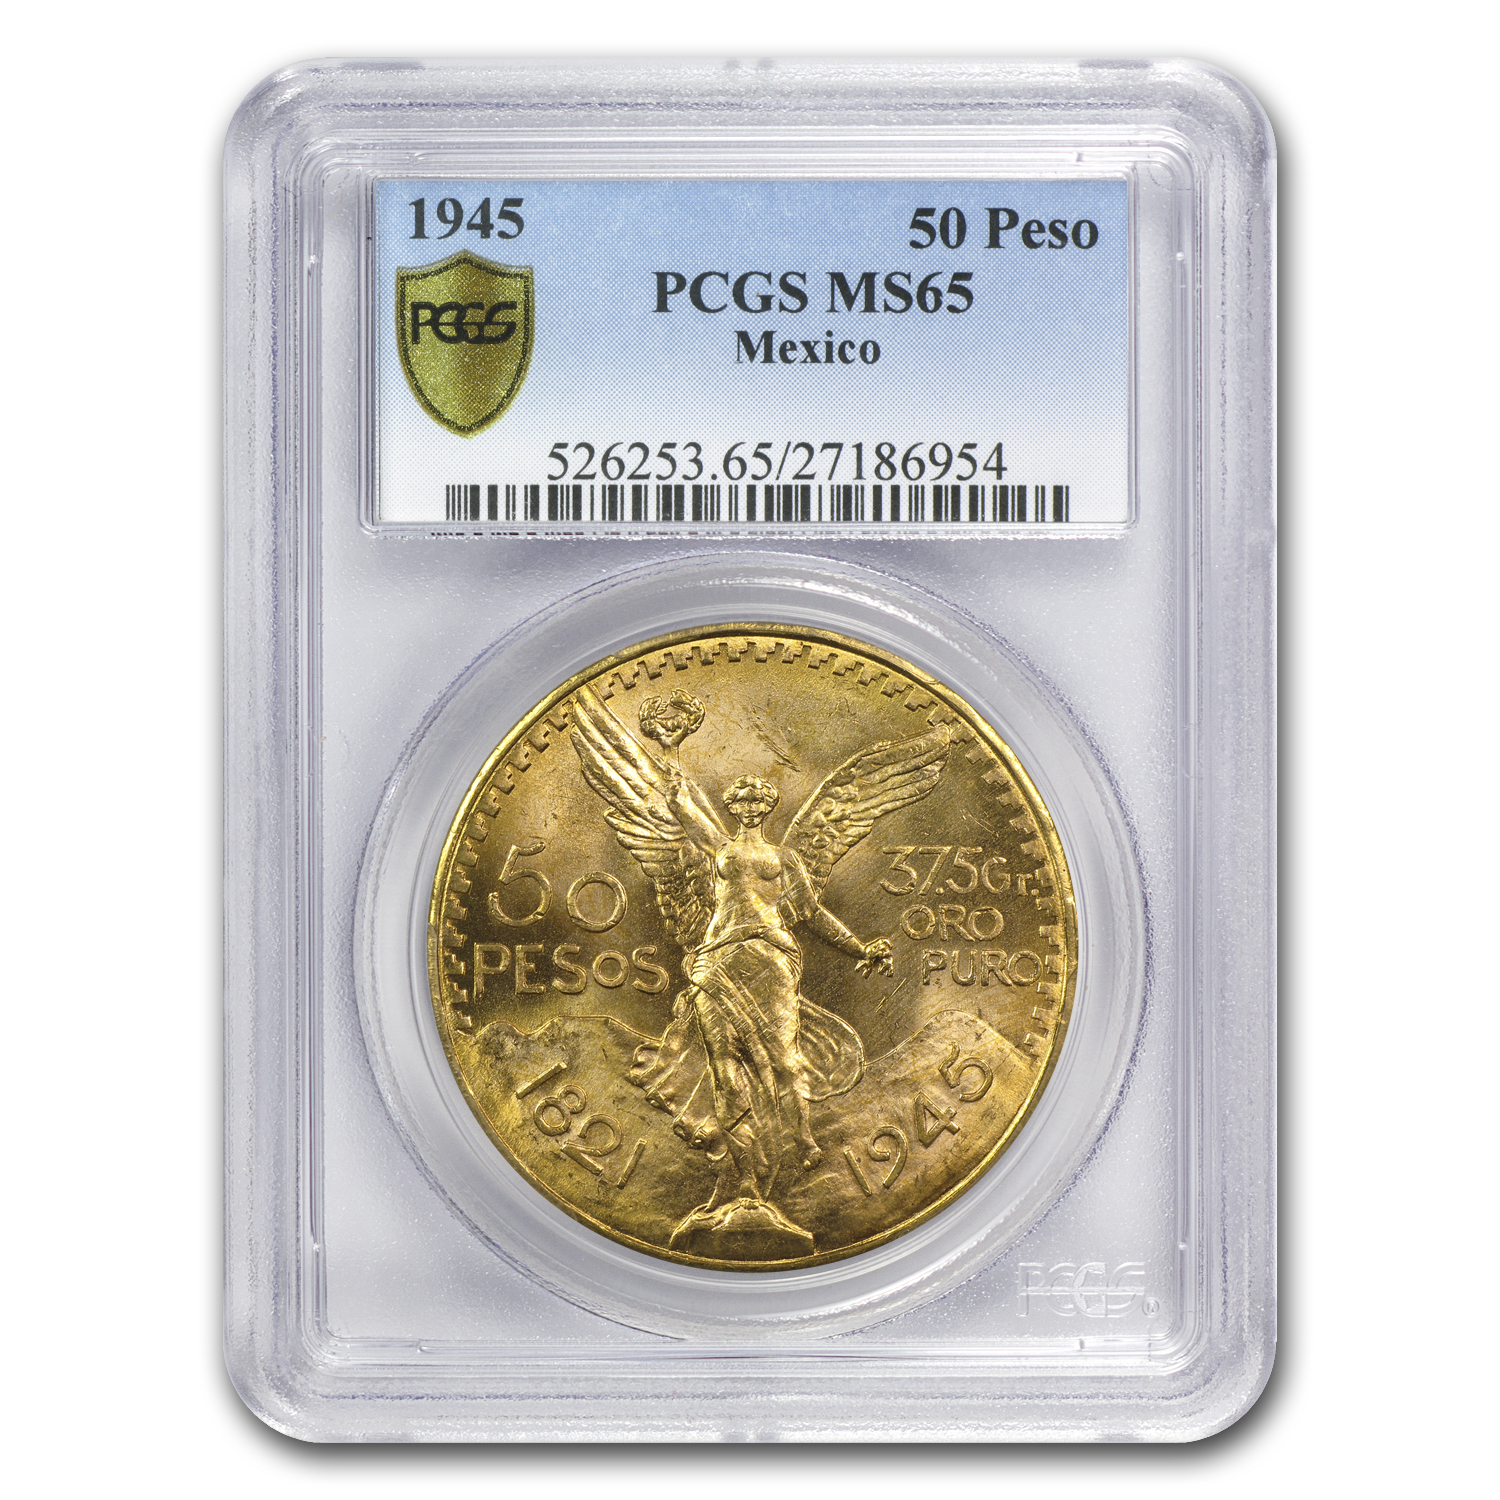 Mexico 1945 50 Pesos Gold MS-65 PCGS